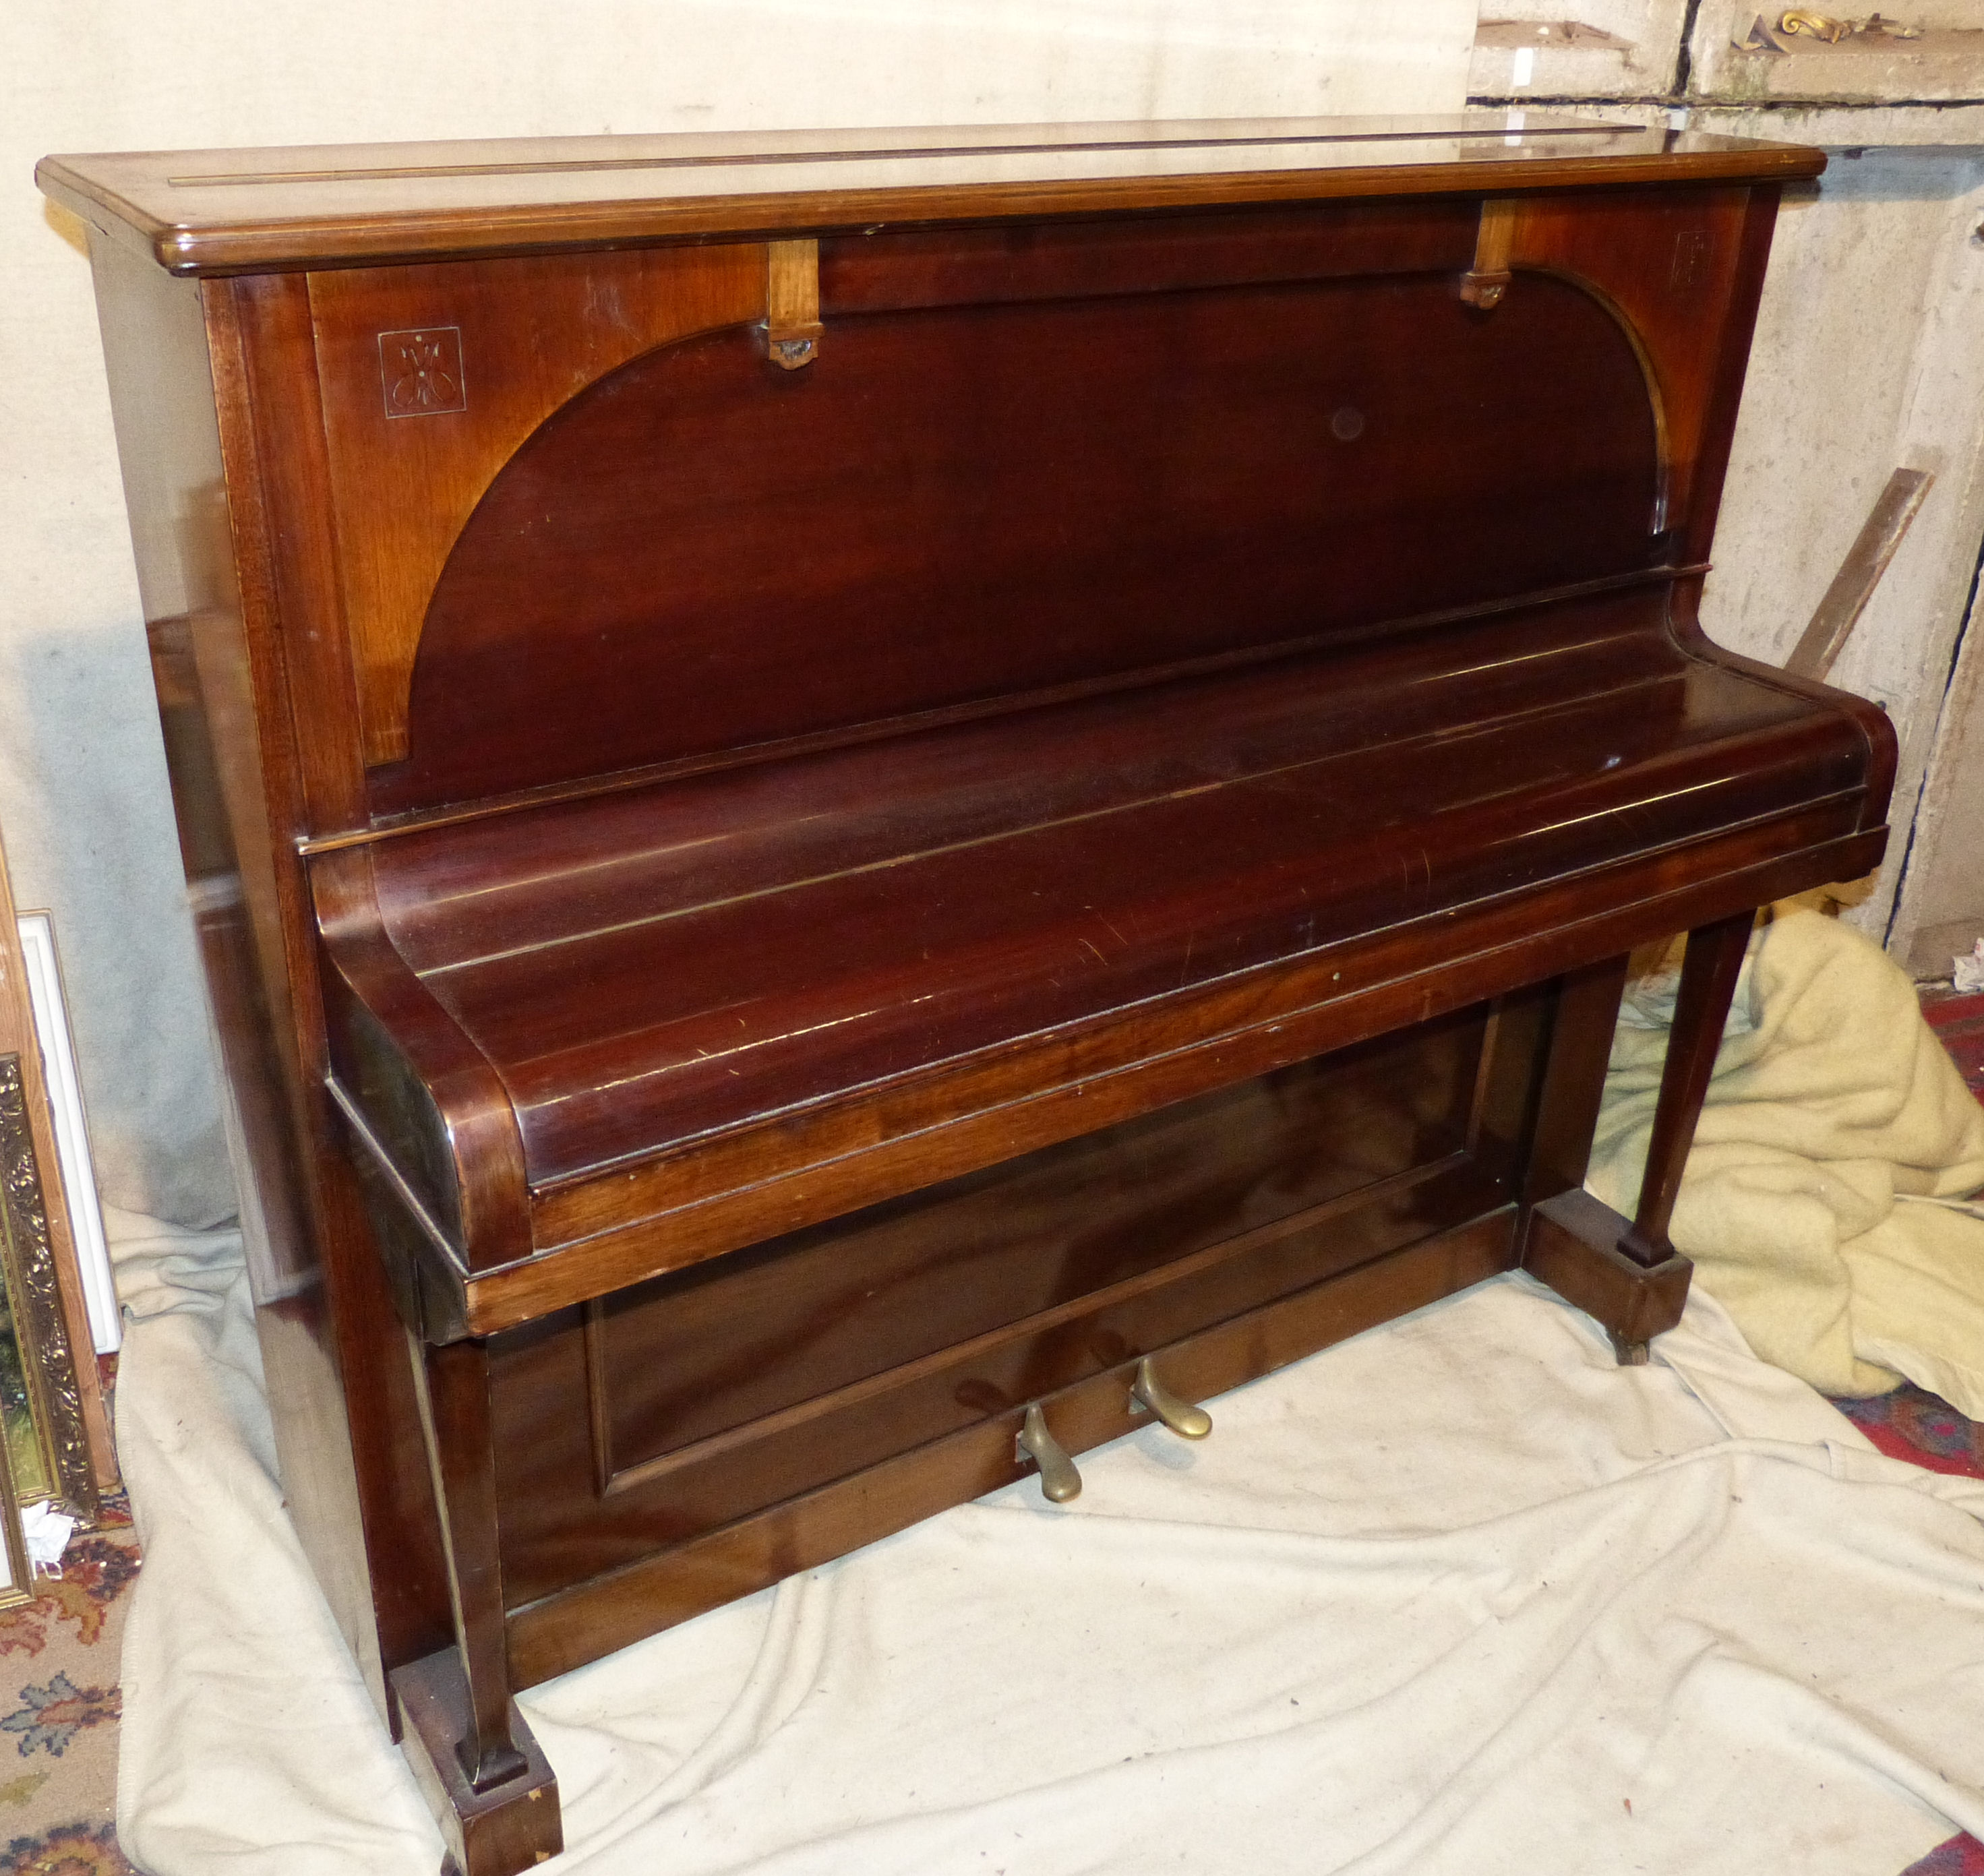 A Collard & Collard, London Mahogany Iron Framed Overstrung Upright Piano on square tapering supports